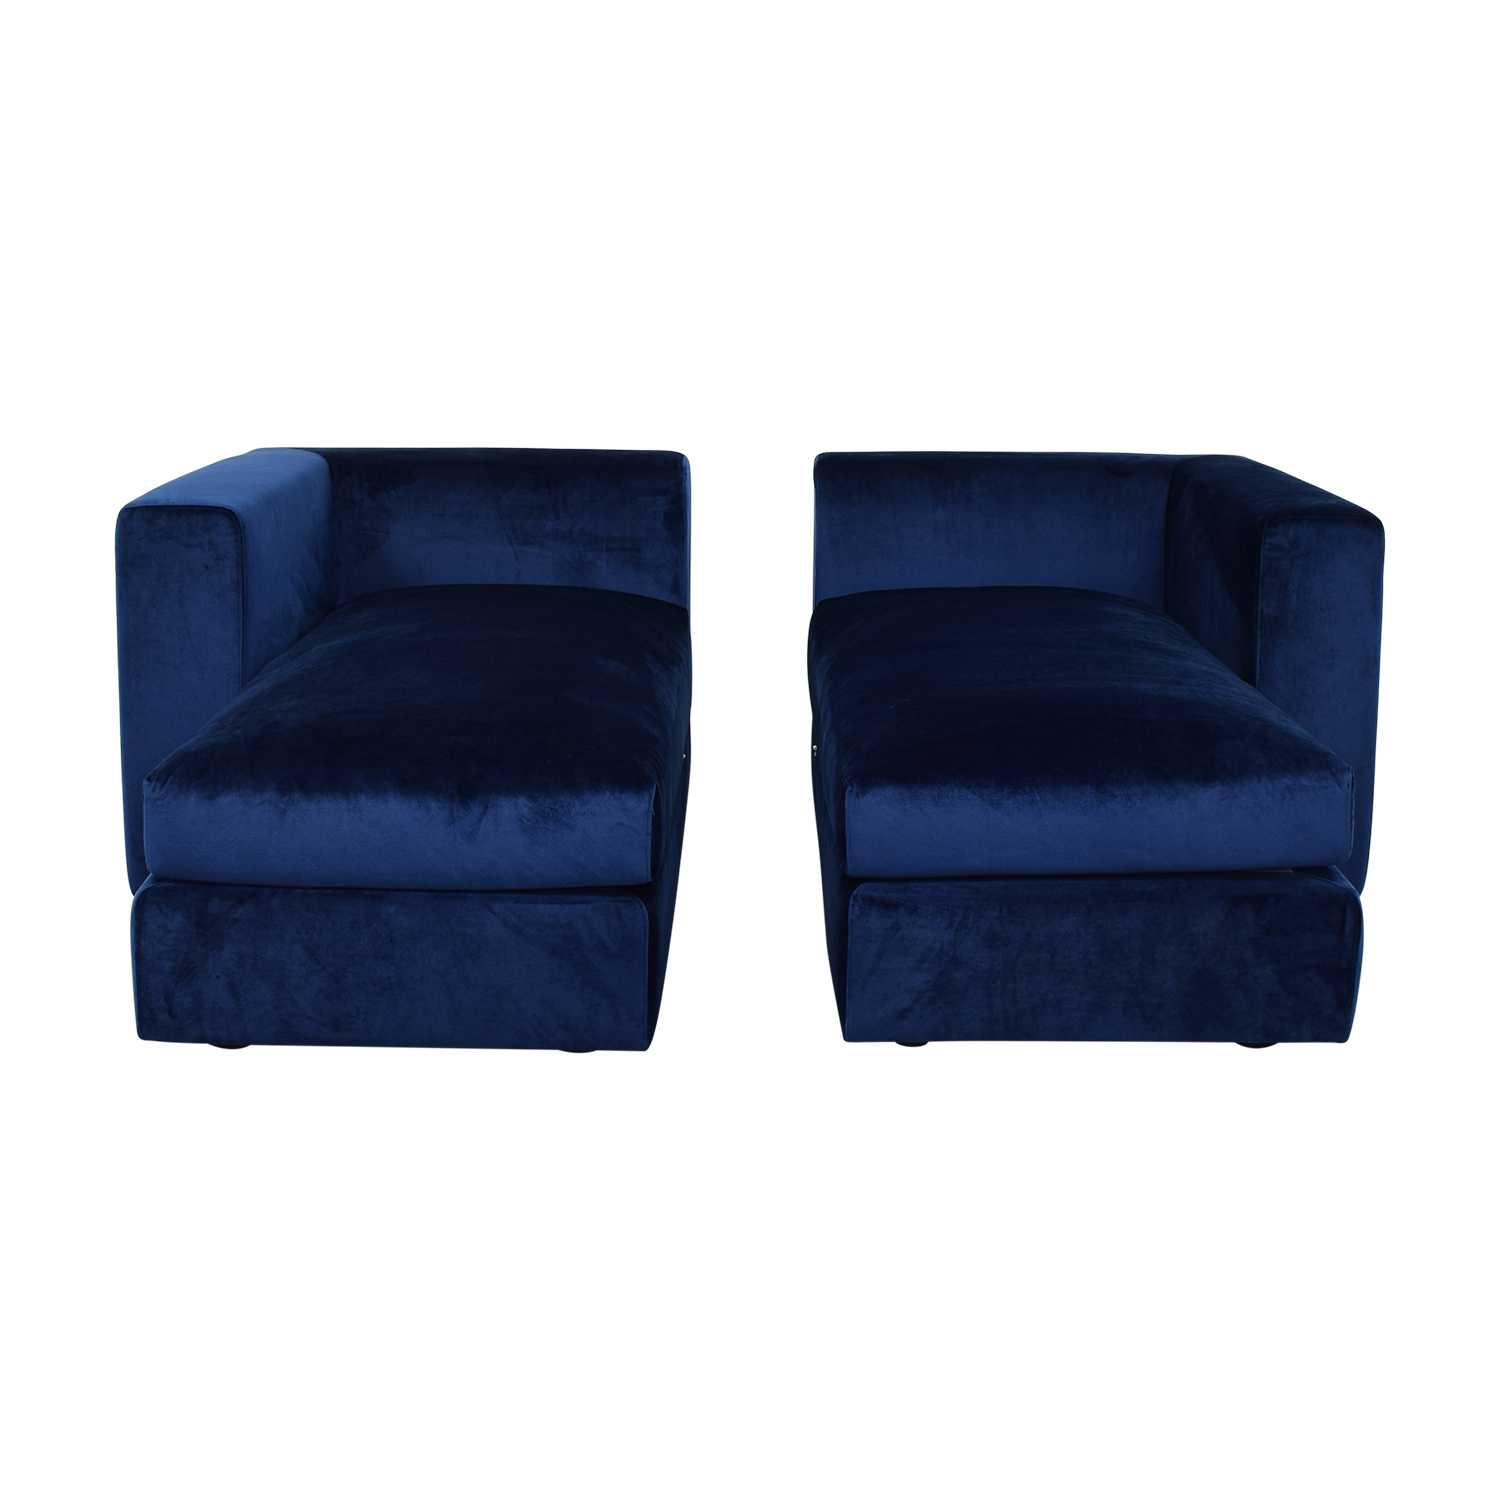 Interior Define Toby Velvet Oxford Blue Double Chaise Sectional Sofa dimensions